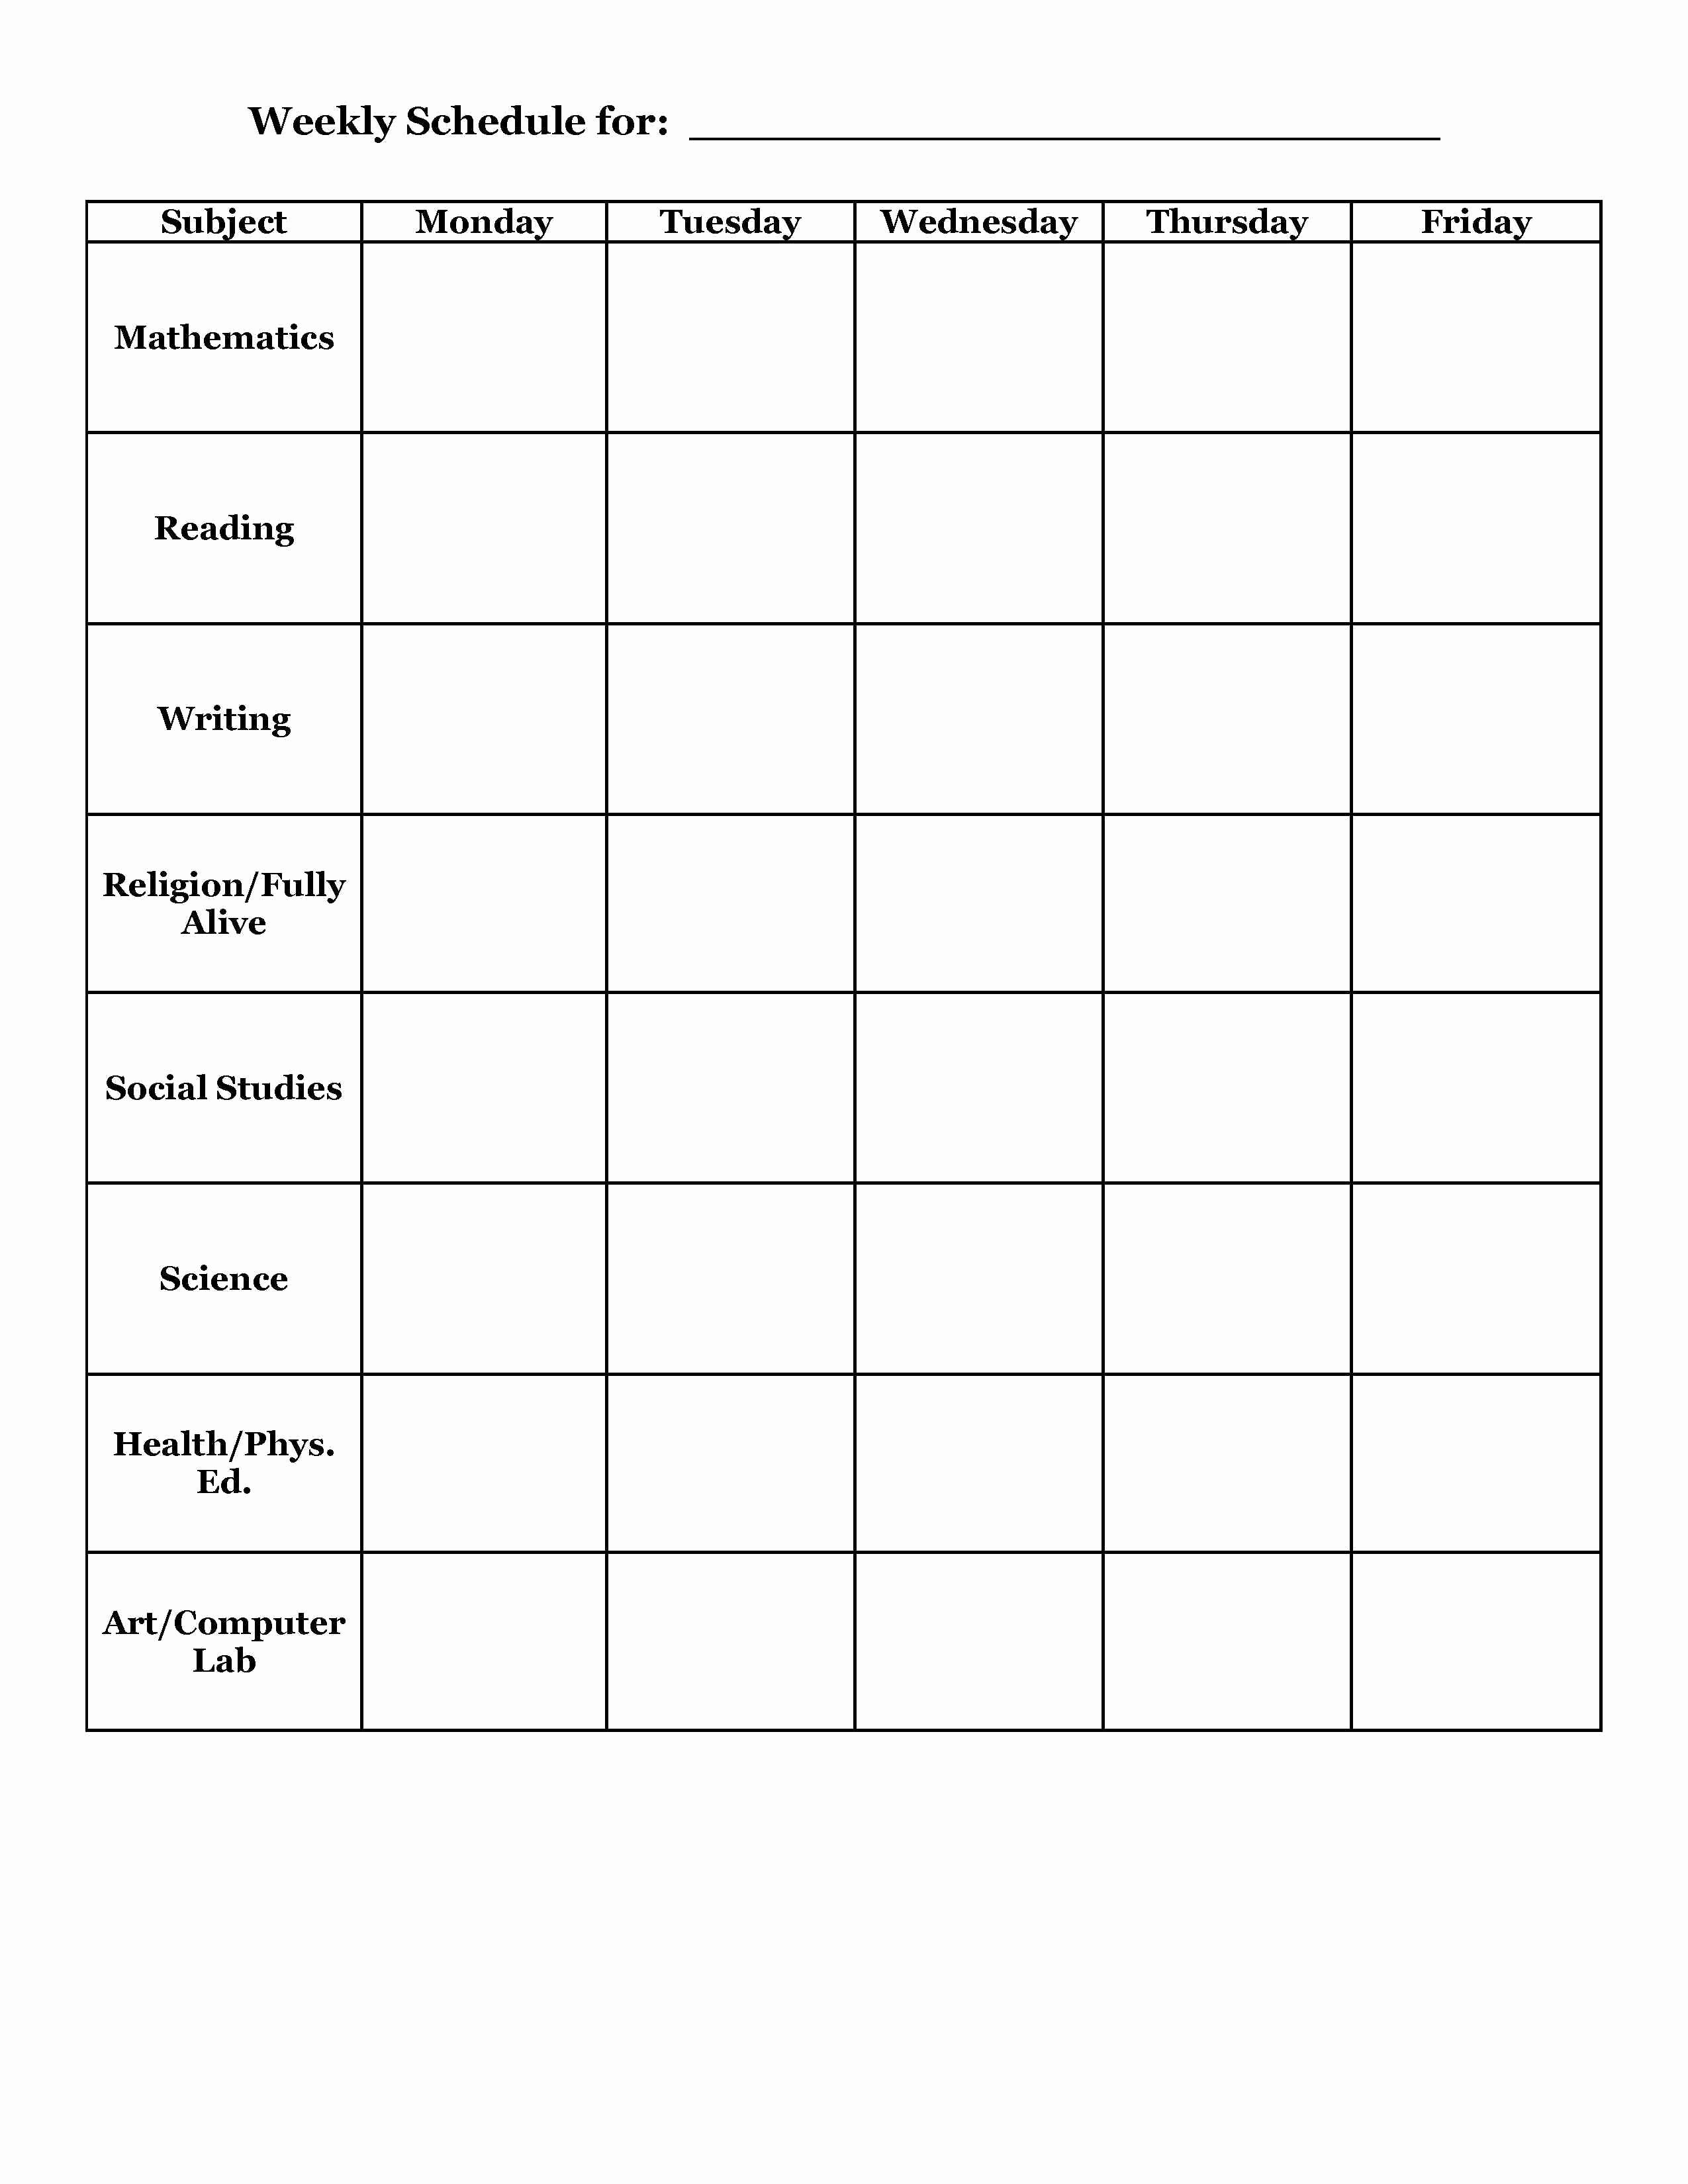 Weekly Planning Template for Teachers Lovely Student Planner Templates